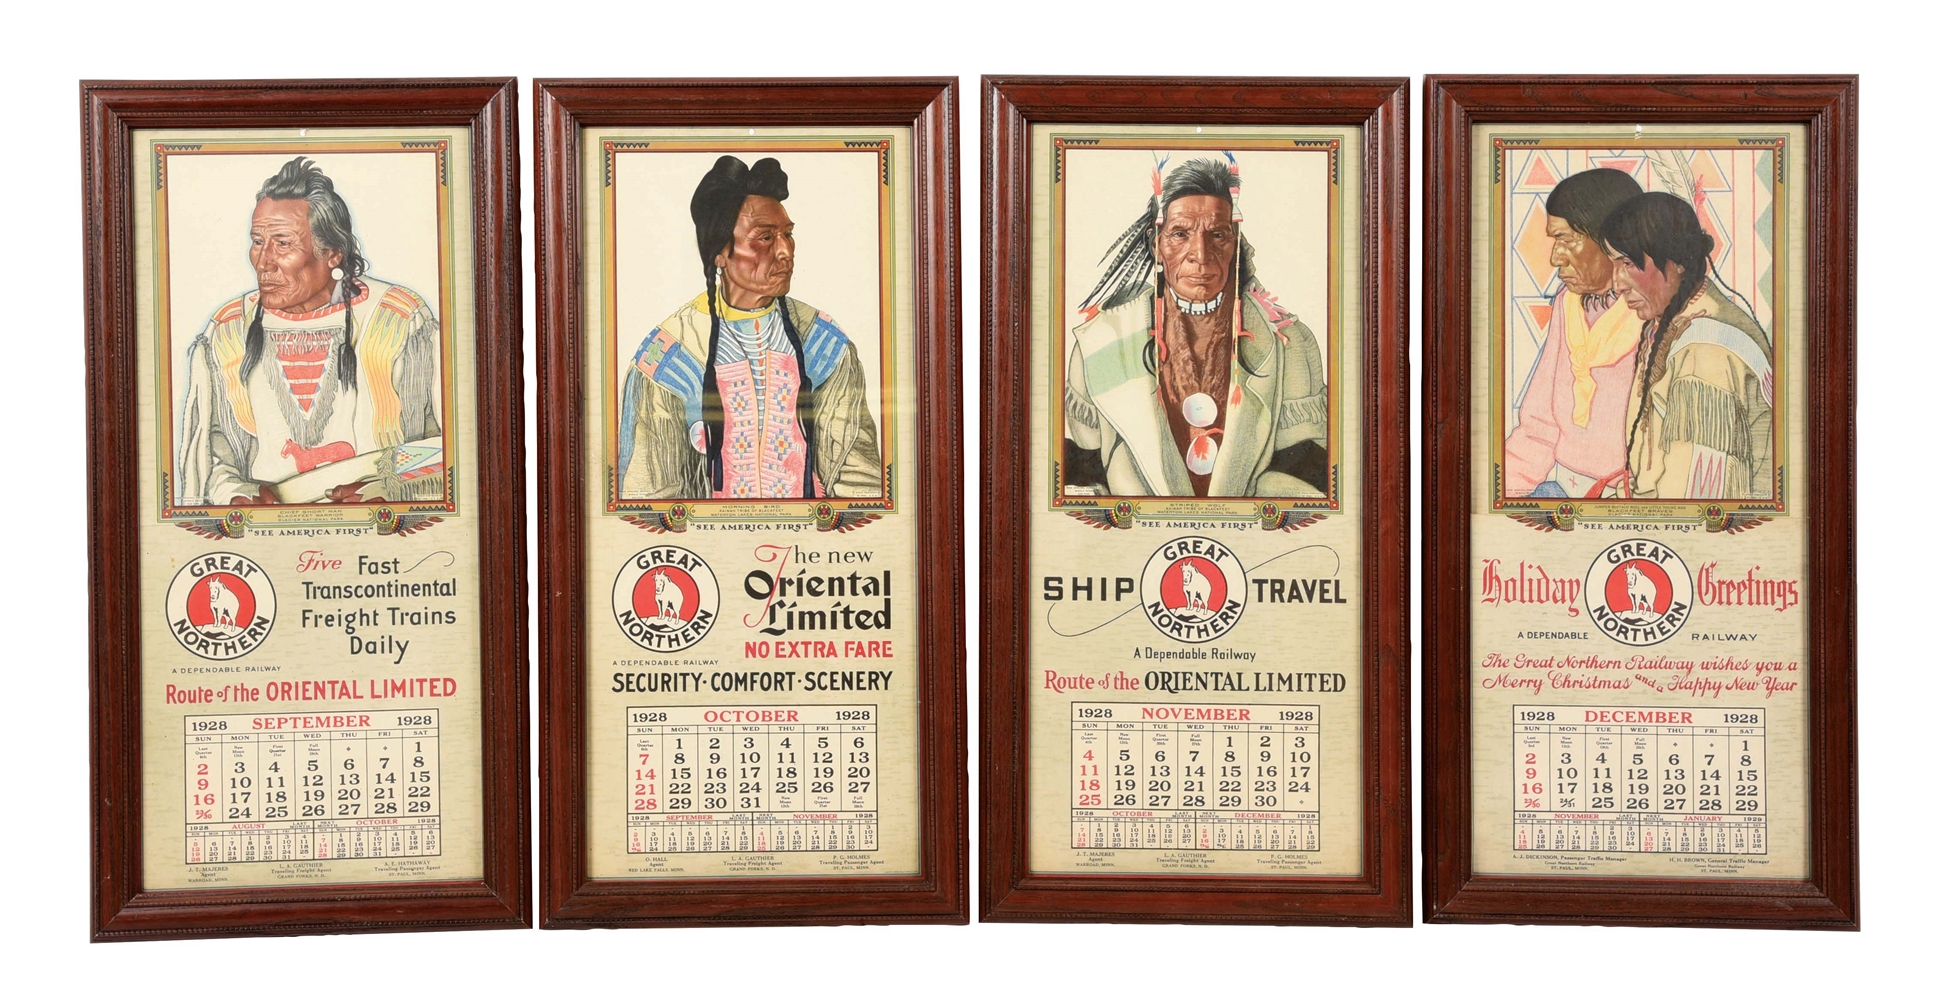 LOT OF 4: 1928 GREAT NORTHERN CALENDARS.